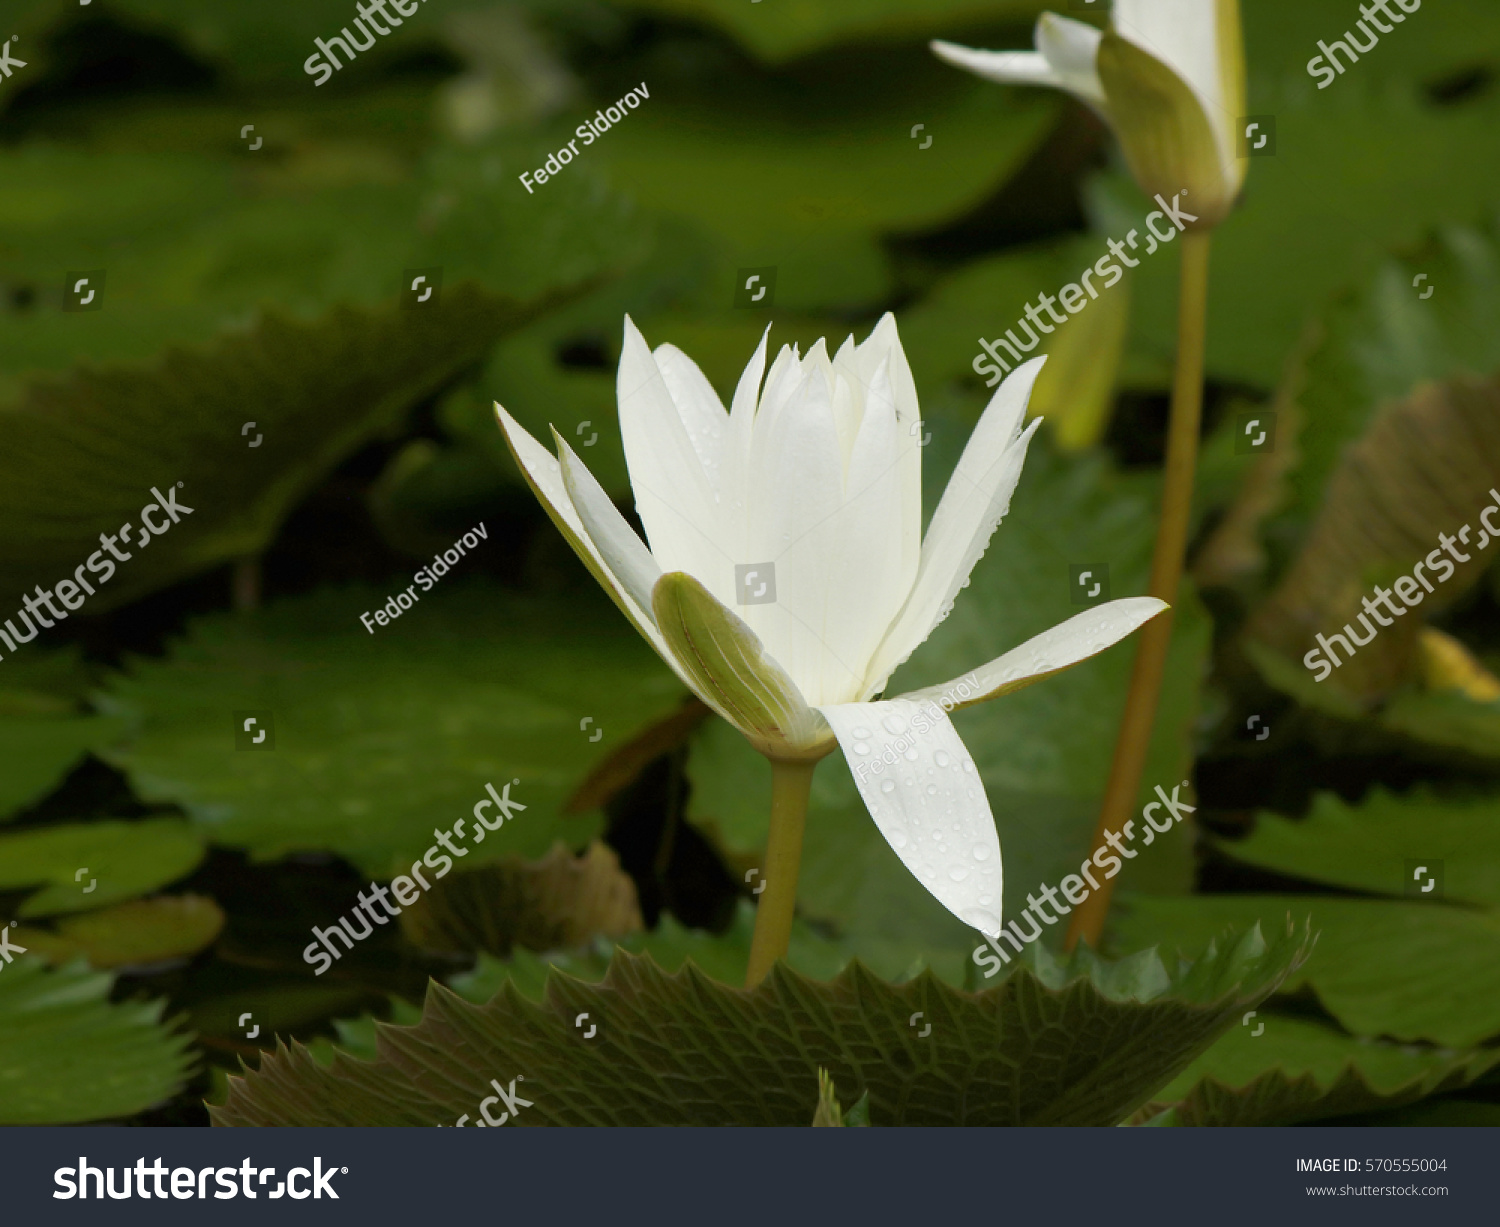 Small white water lily flower water stock photo edit now 570555004 a small white water lily flower with water drops on a petal izmirmasajfo